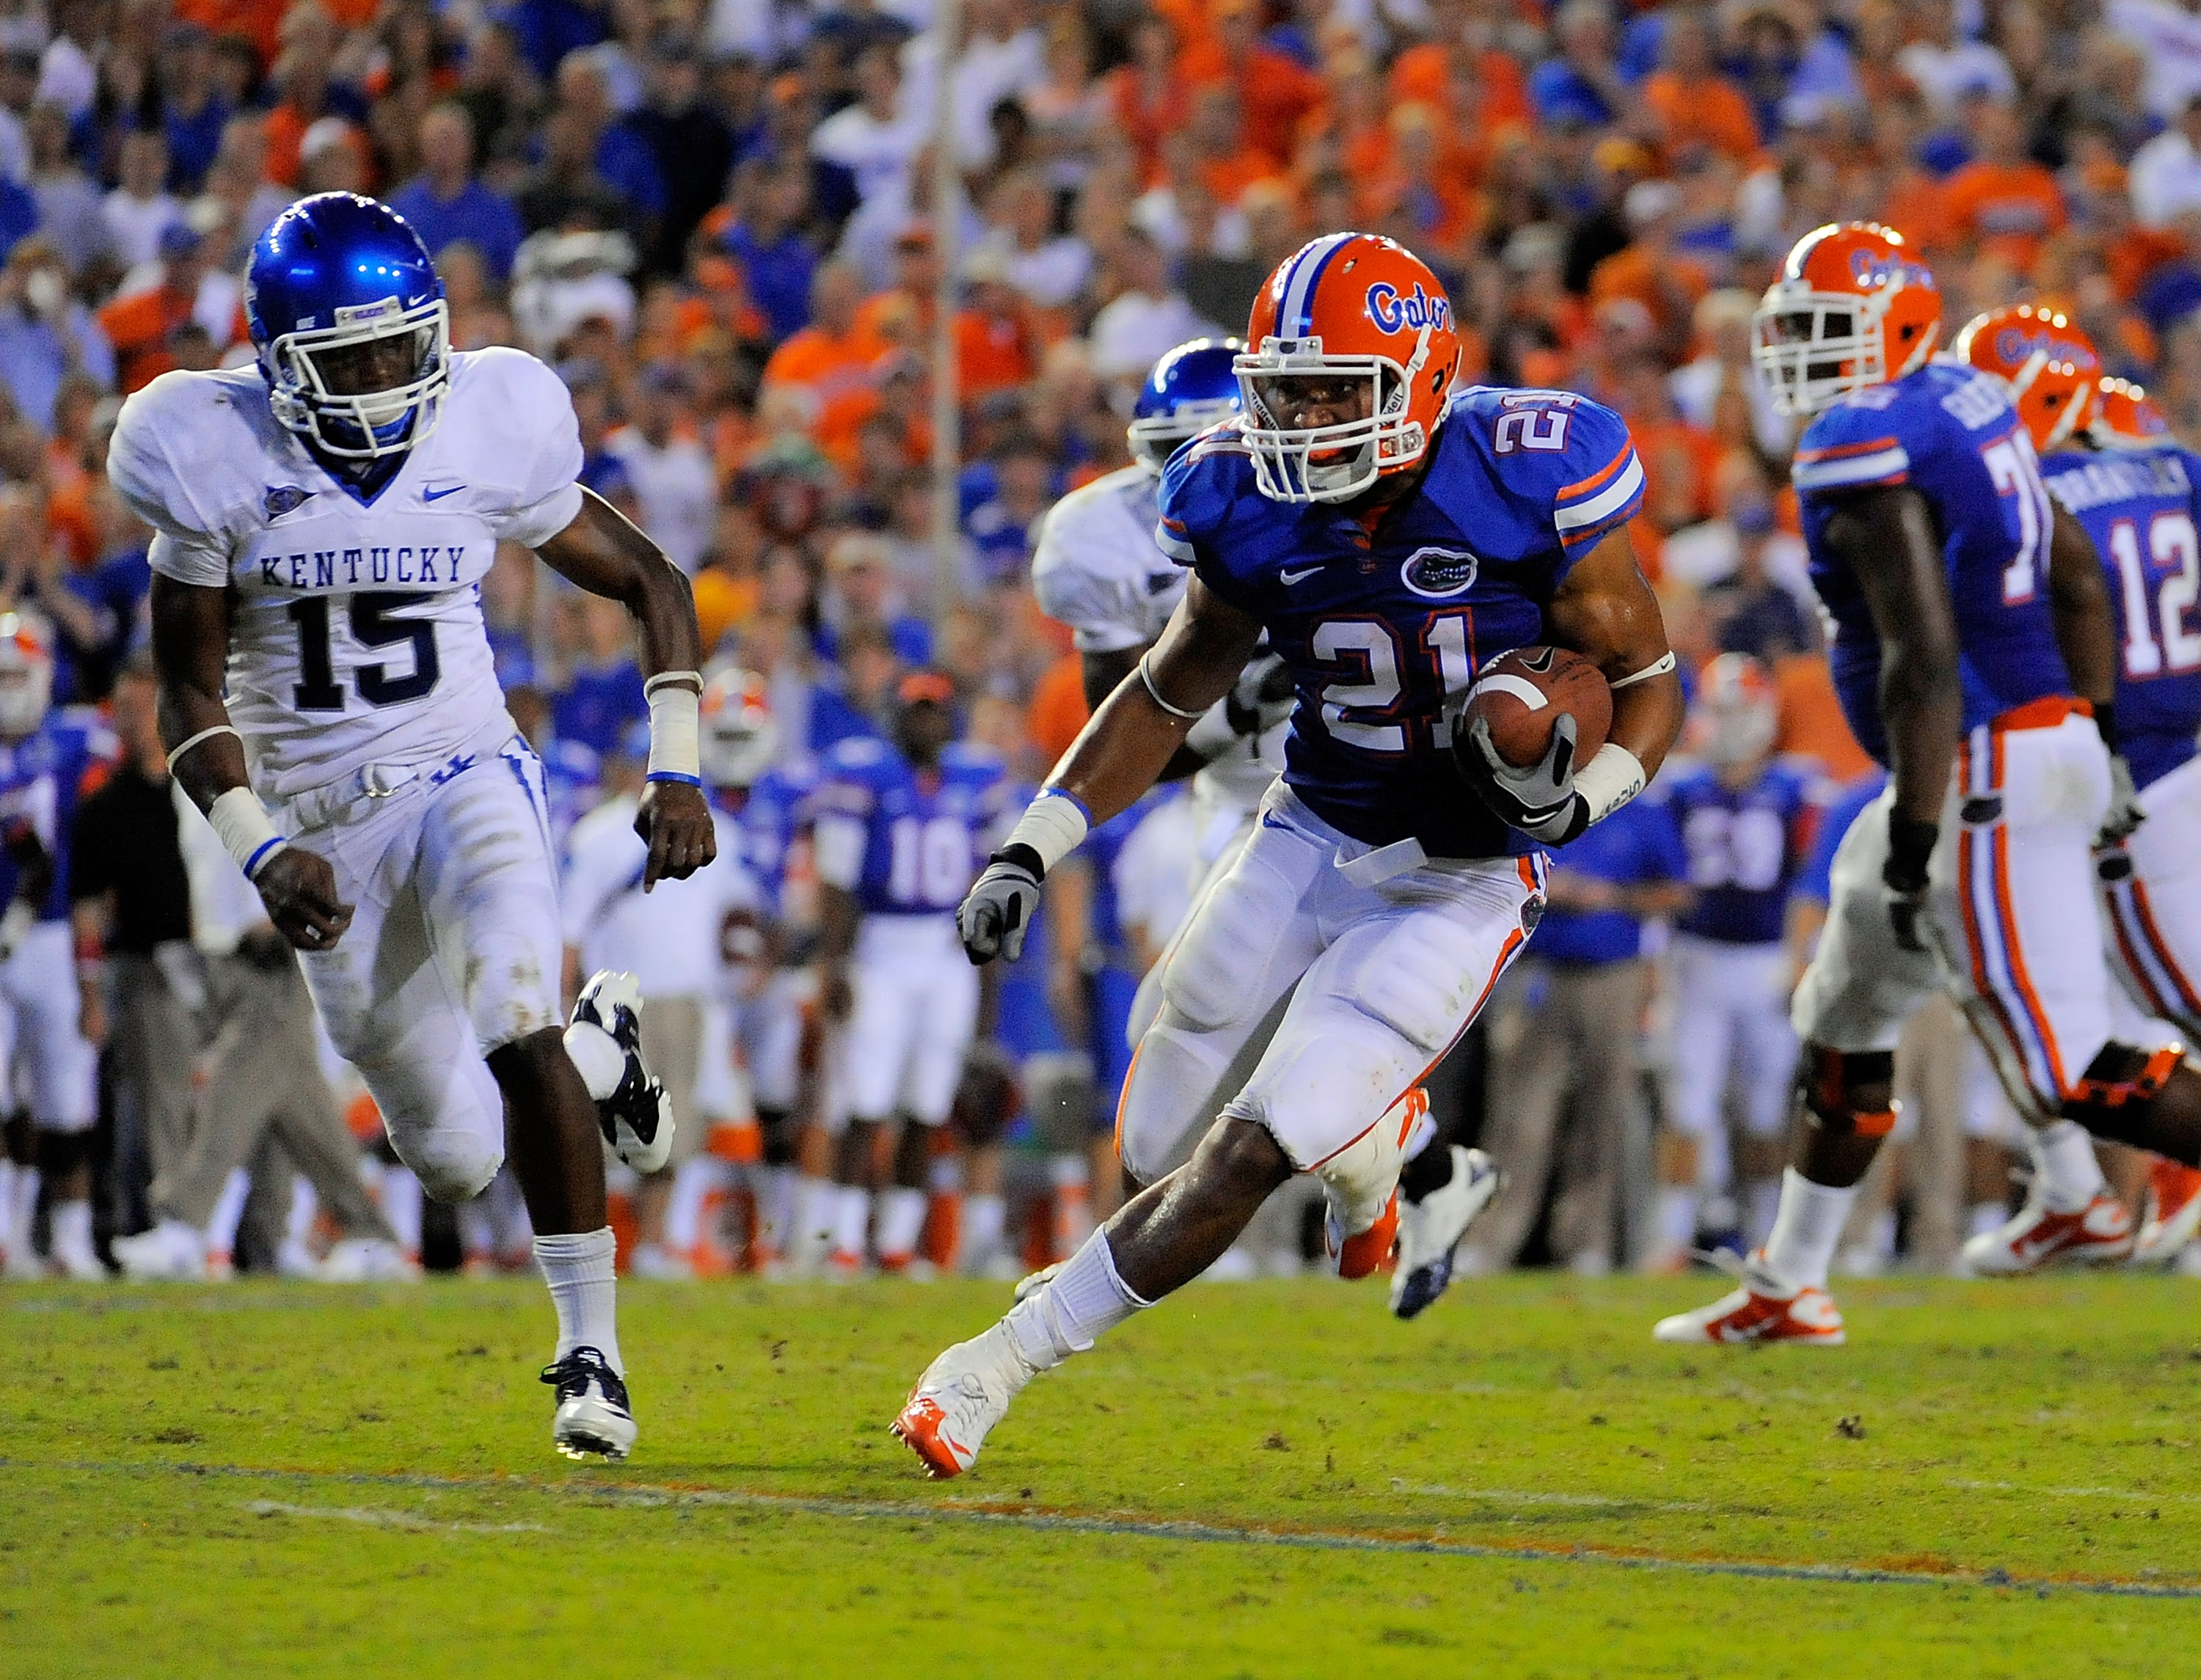 GAINESVILLE, FL - SEPTEMBER 25:  Running back Emmanuel Moody #21 of the Florida Gators gets past cornerback Martavius Neloms #15 of the Kentucky Wildcats at Ben Hill Griffin Stadium on September 25, 2010 in Gainesville, Florida. Florida defeated Kentucky